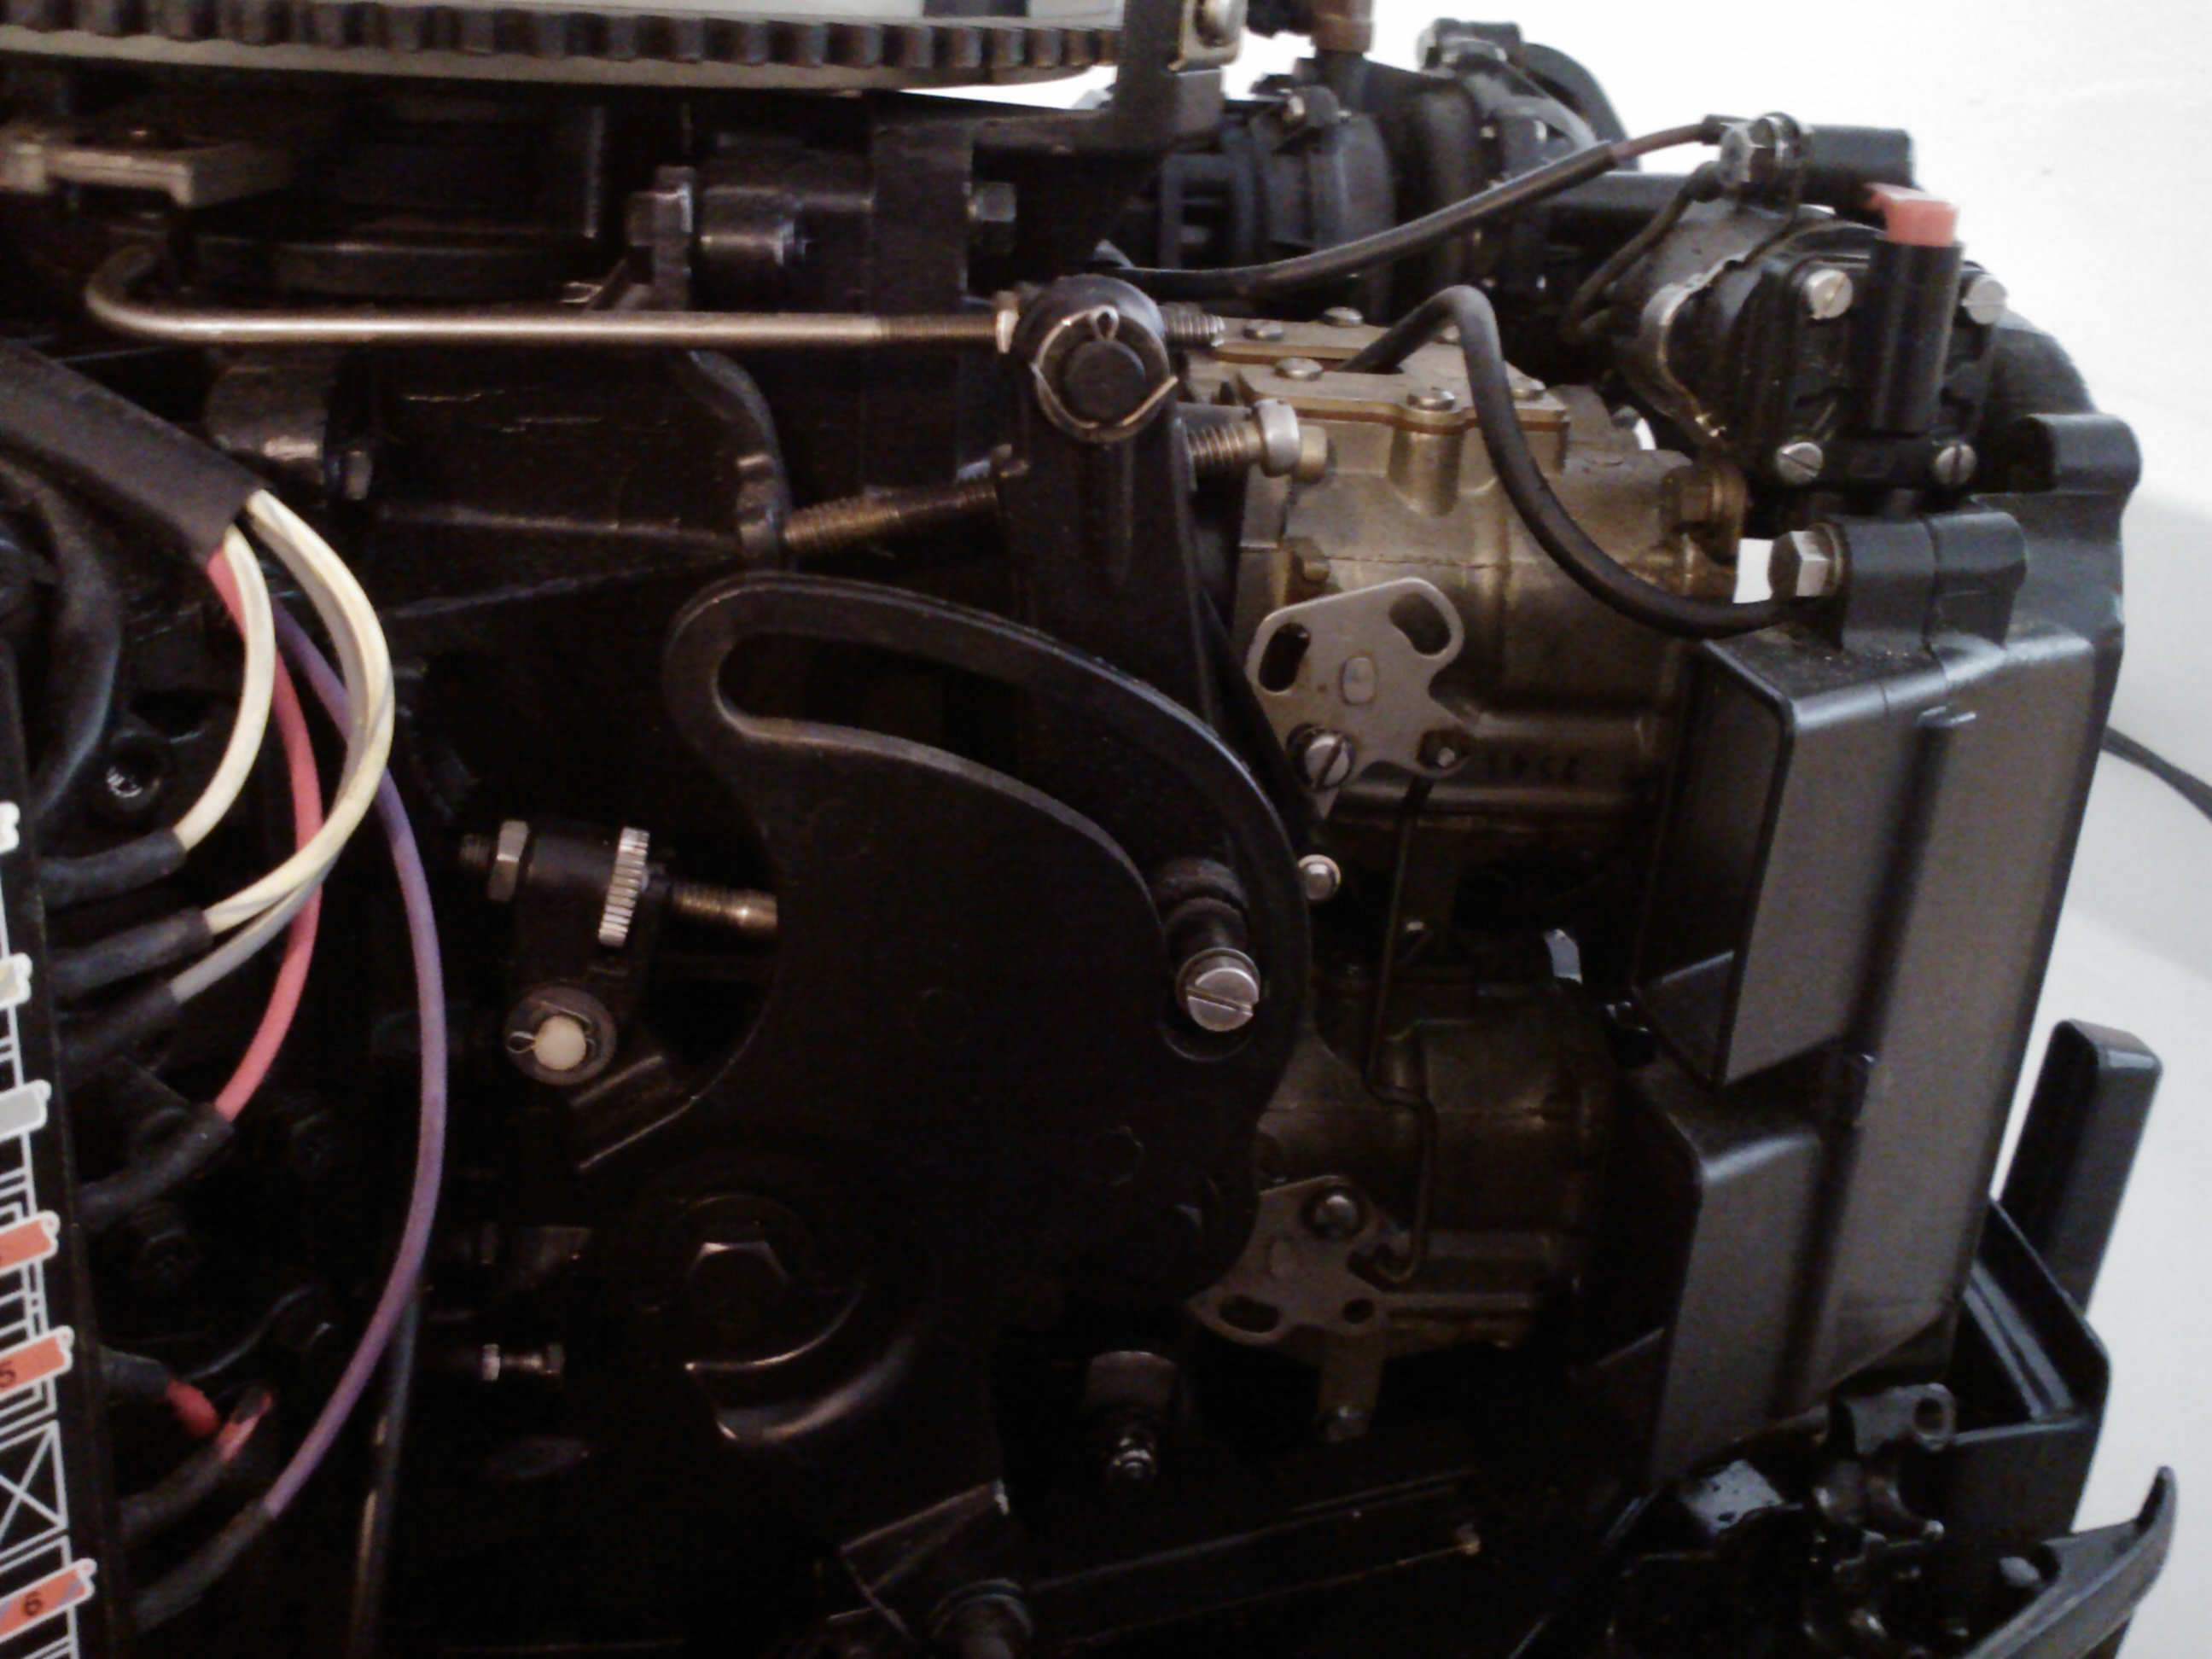 1989 110 hp Evinrude 20 in shaft I just replace the shift and